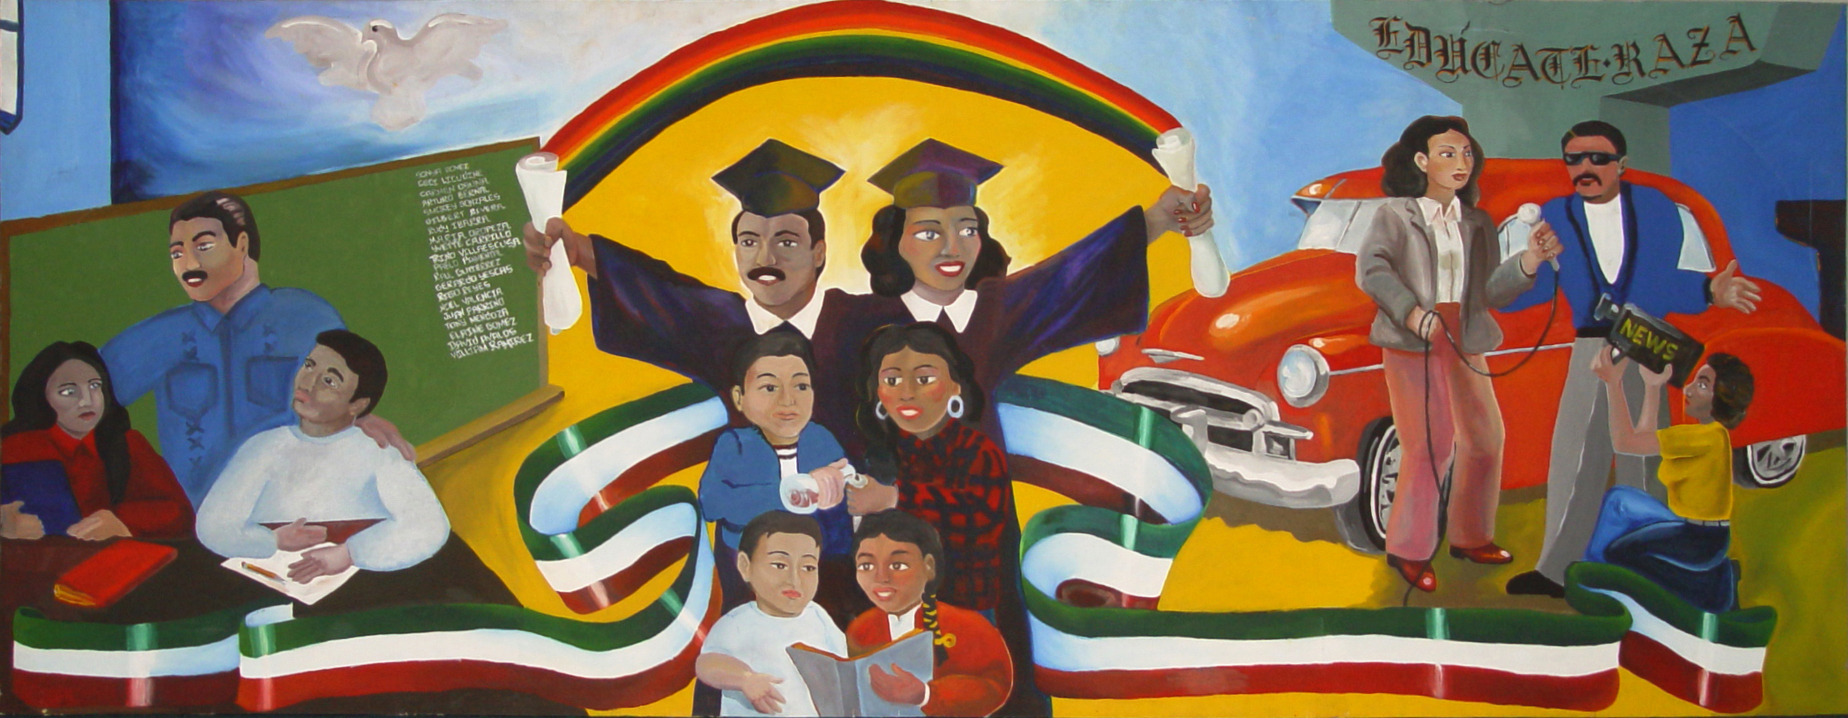 Community notes la prensa san diego for Educational mural